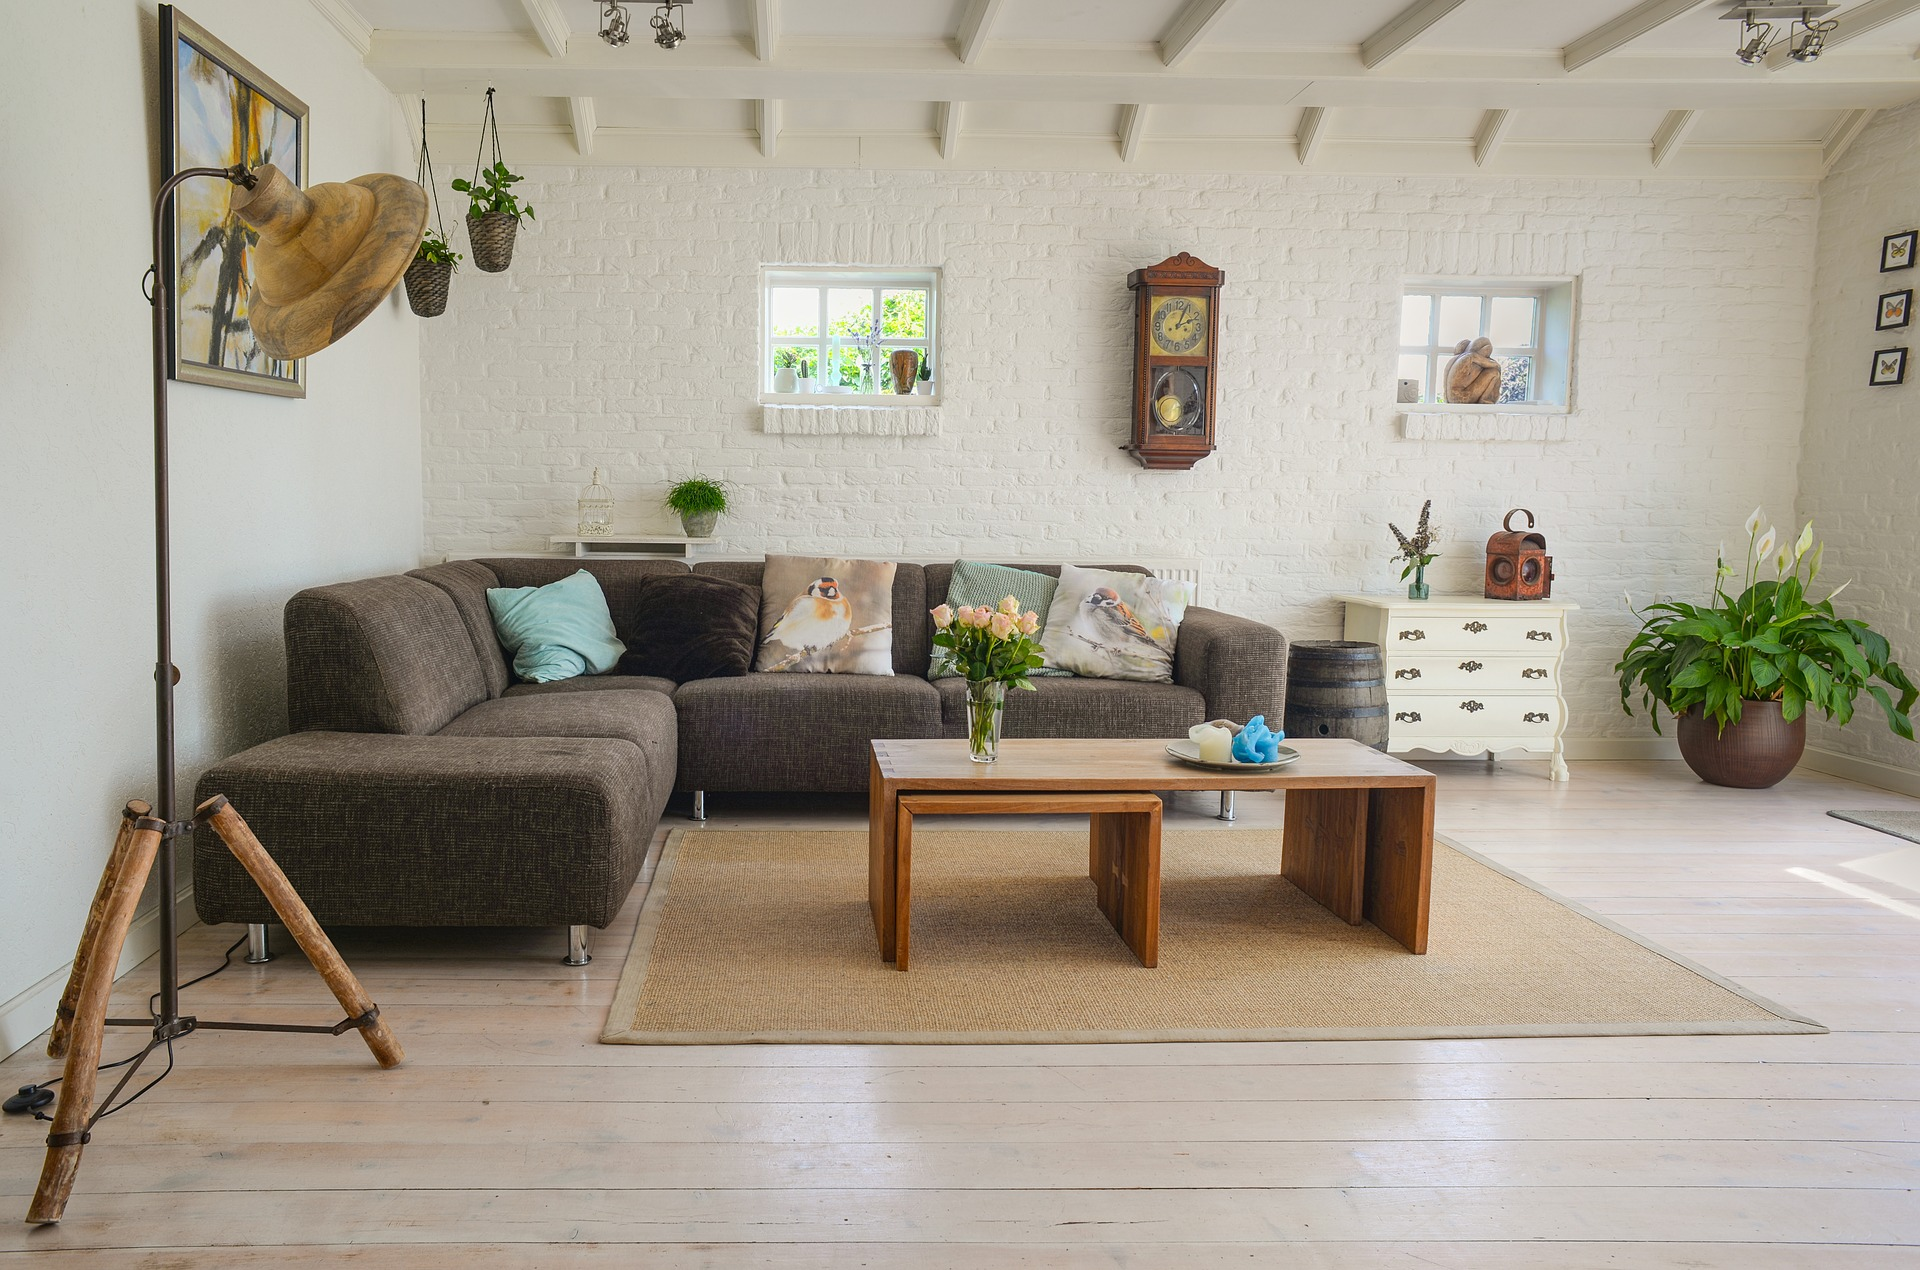 10 Furniture Tips to Make Your Apartment Look Your Age